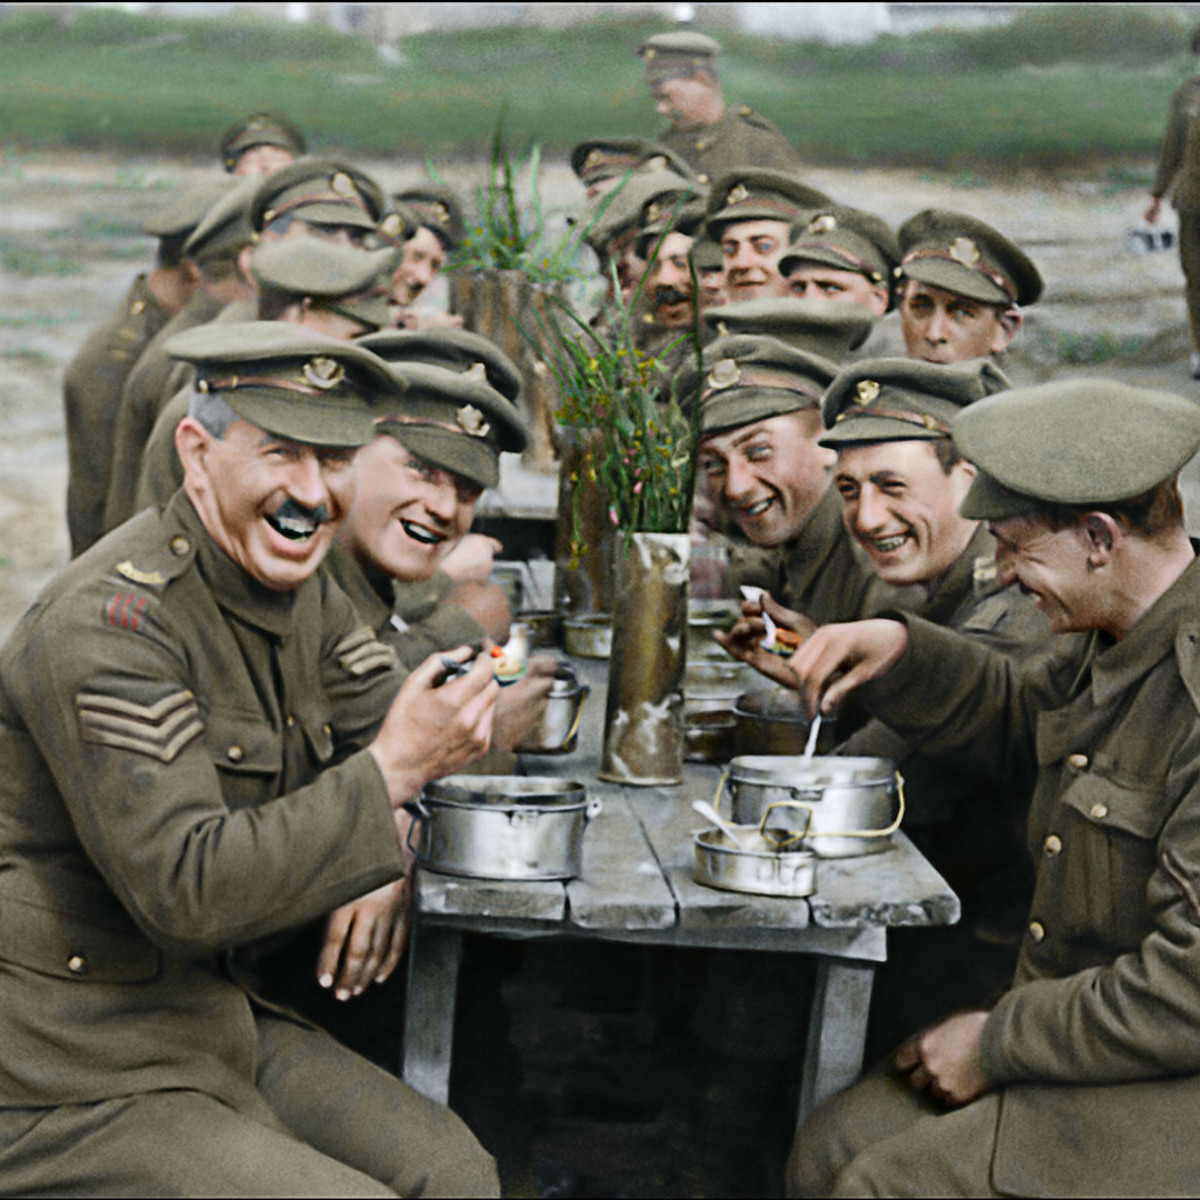 Scene from They Shall Not Grow Old